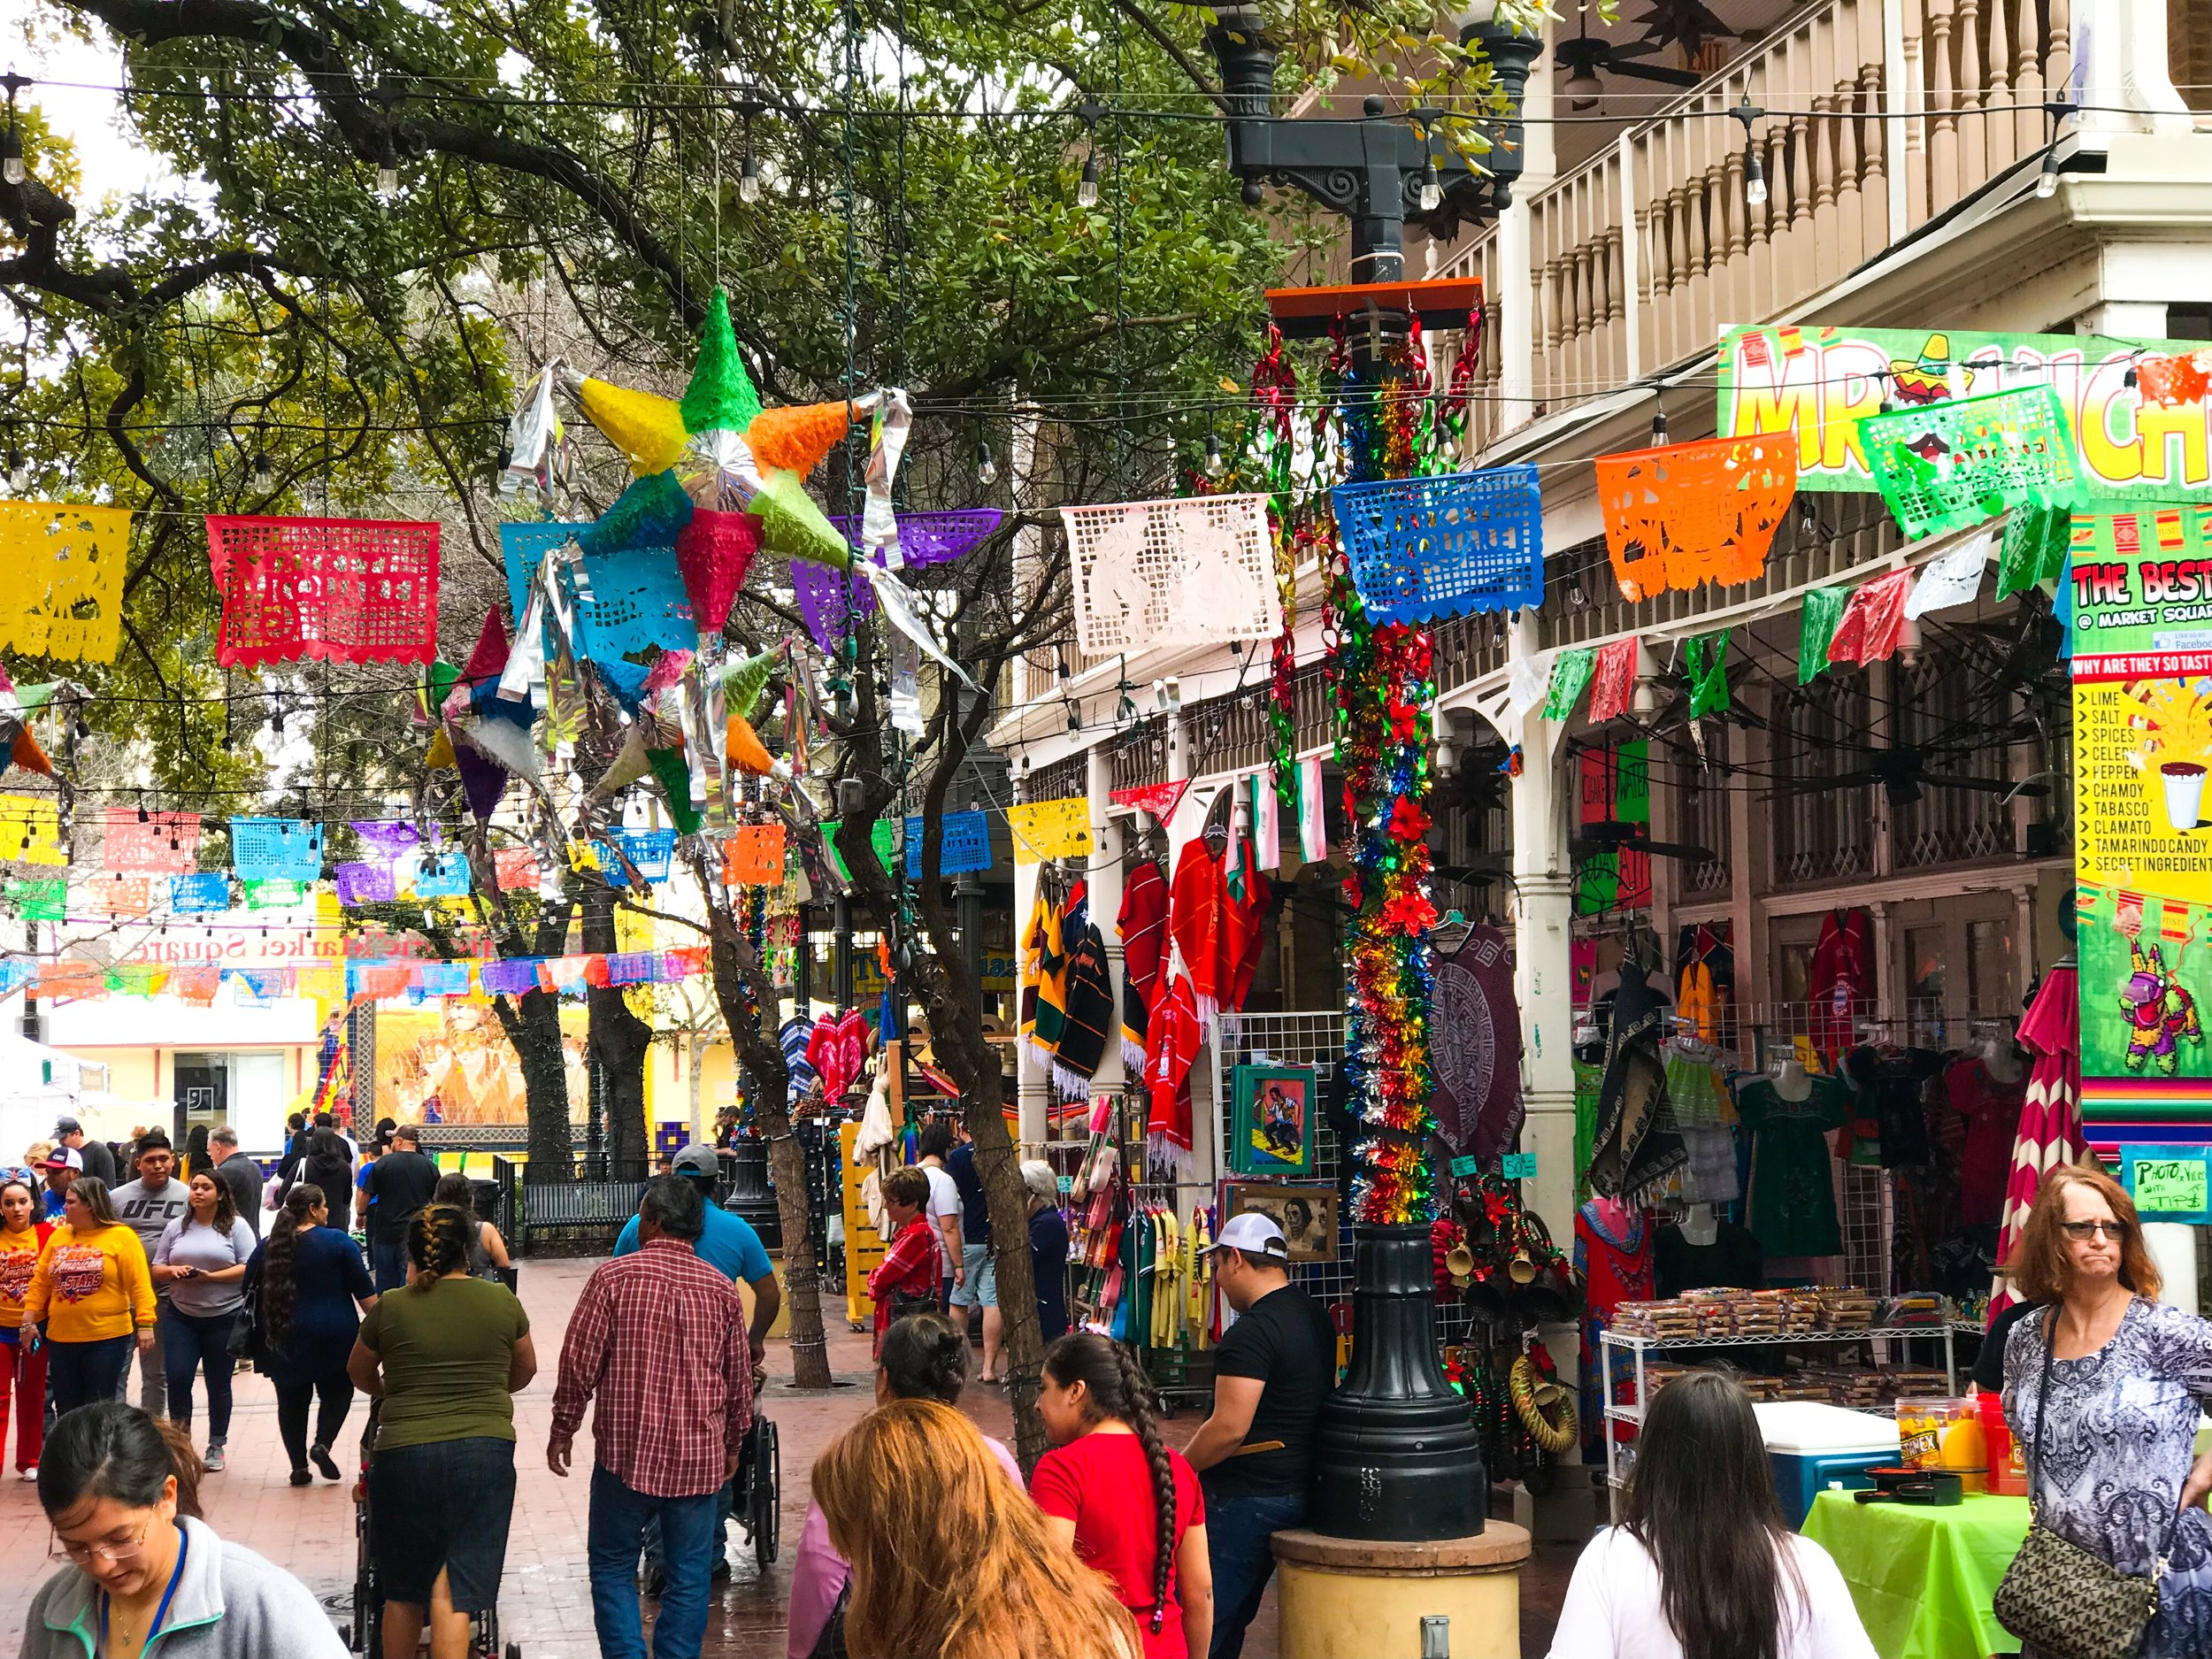 MARKET SQUARE - Shop and dine at the largest Mexican market outside of Mexico